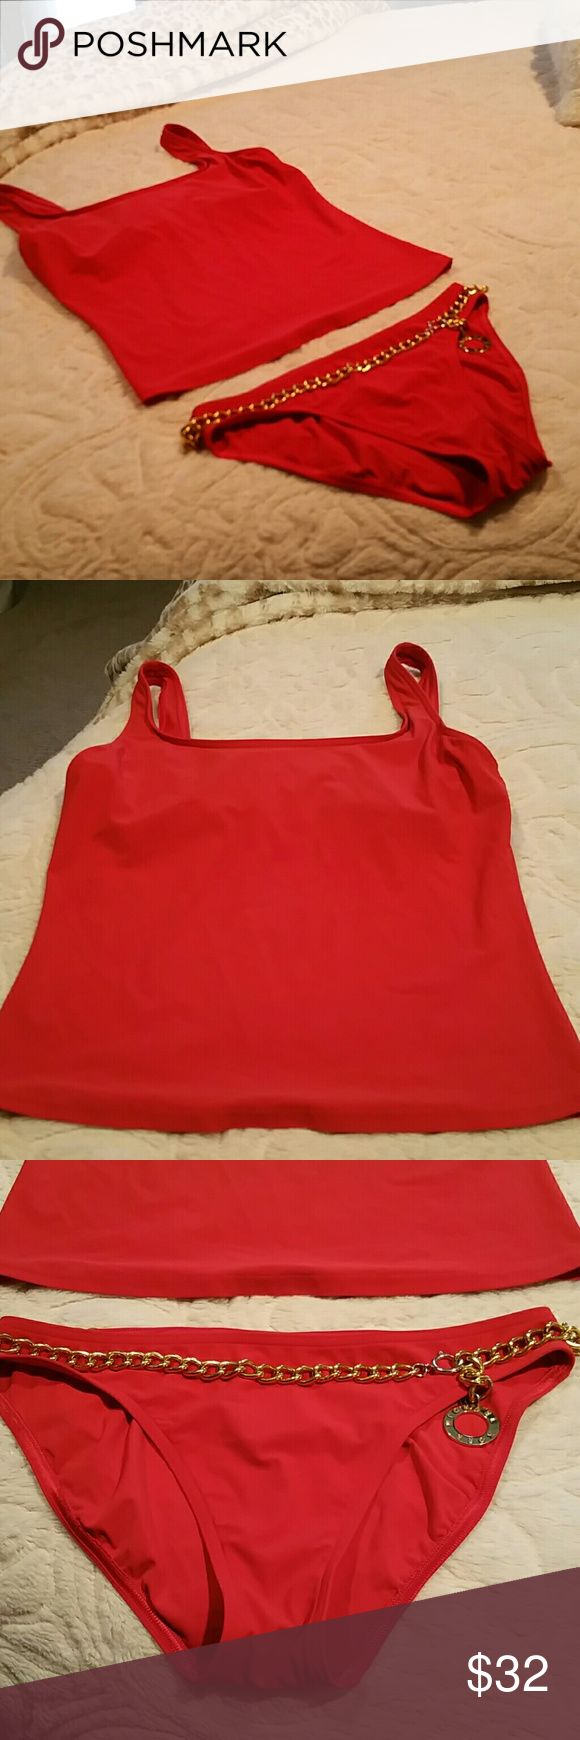 Michael Kors Red Tankini Size 6 Reposhing- tried and tried to get this to work for me but I have just too much fluff around my middle. Such a cute suit and in great condition!! Light padding in top- built in shelf for more coverage up top. Color is red even though looks a bit orange in pics. Comes from smoke and pet free home. Bundle to save more $$! Michael Kors Swim Bikinis